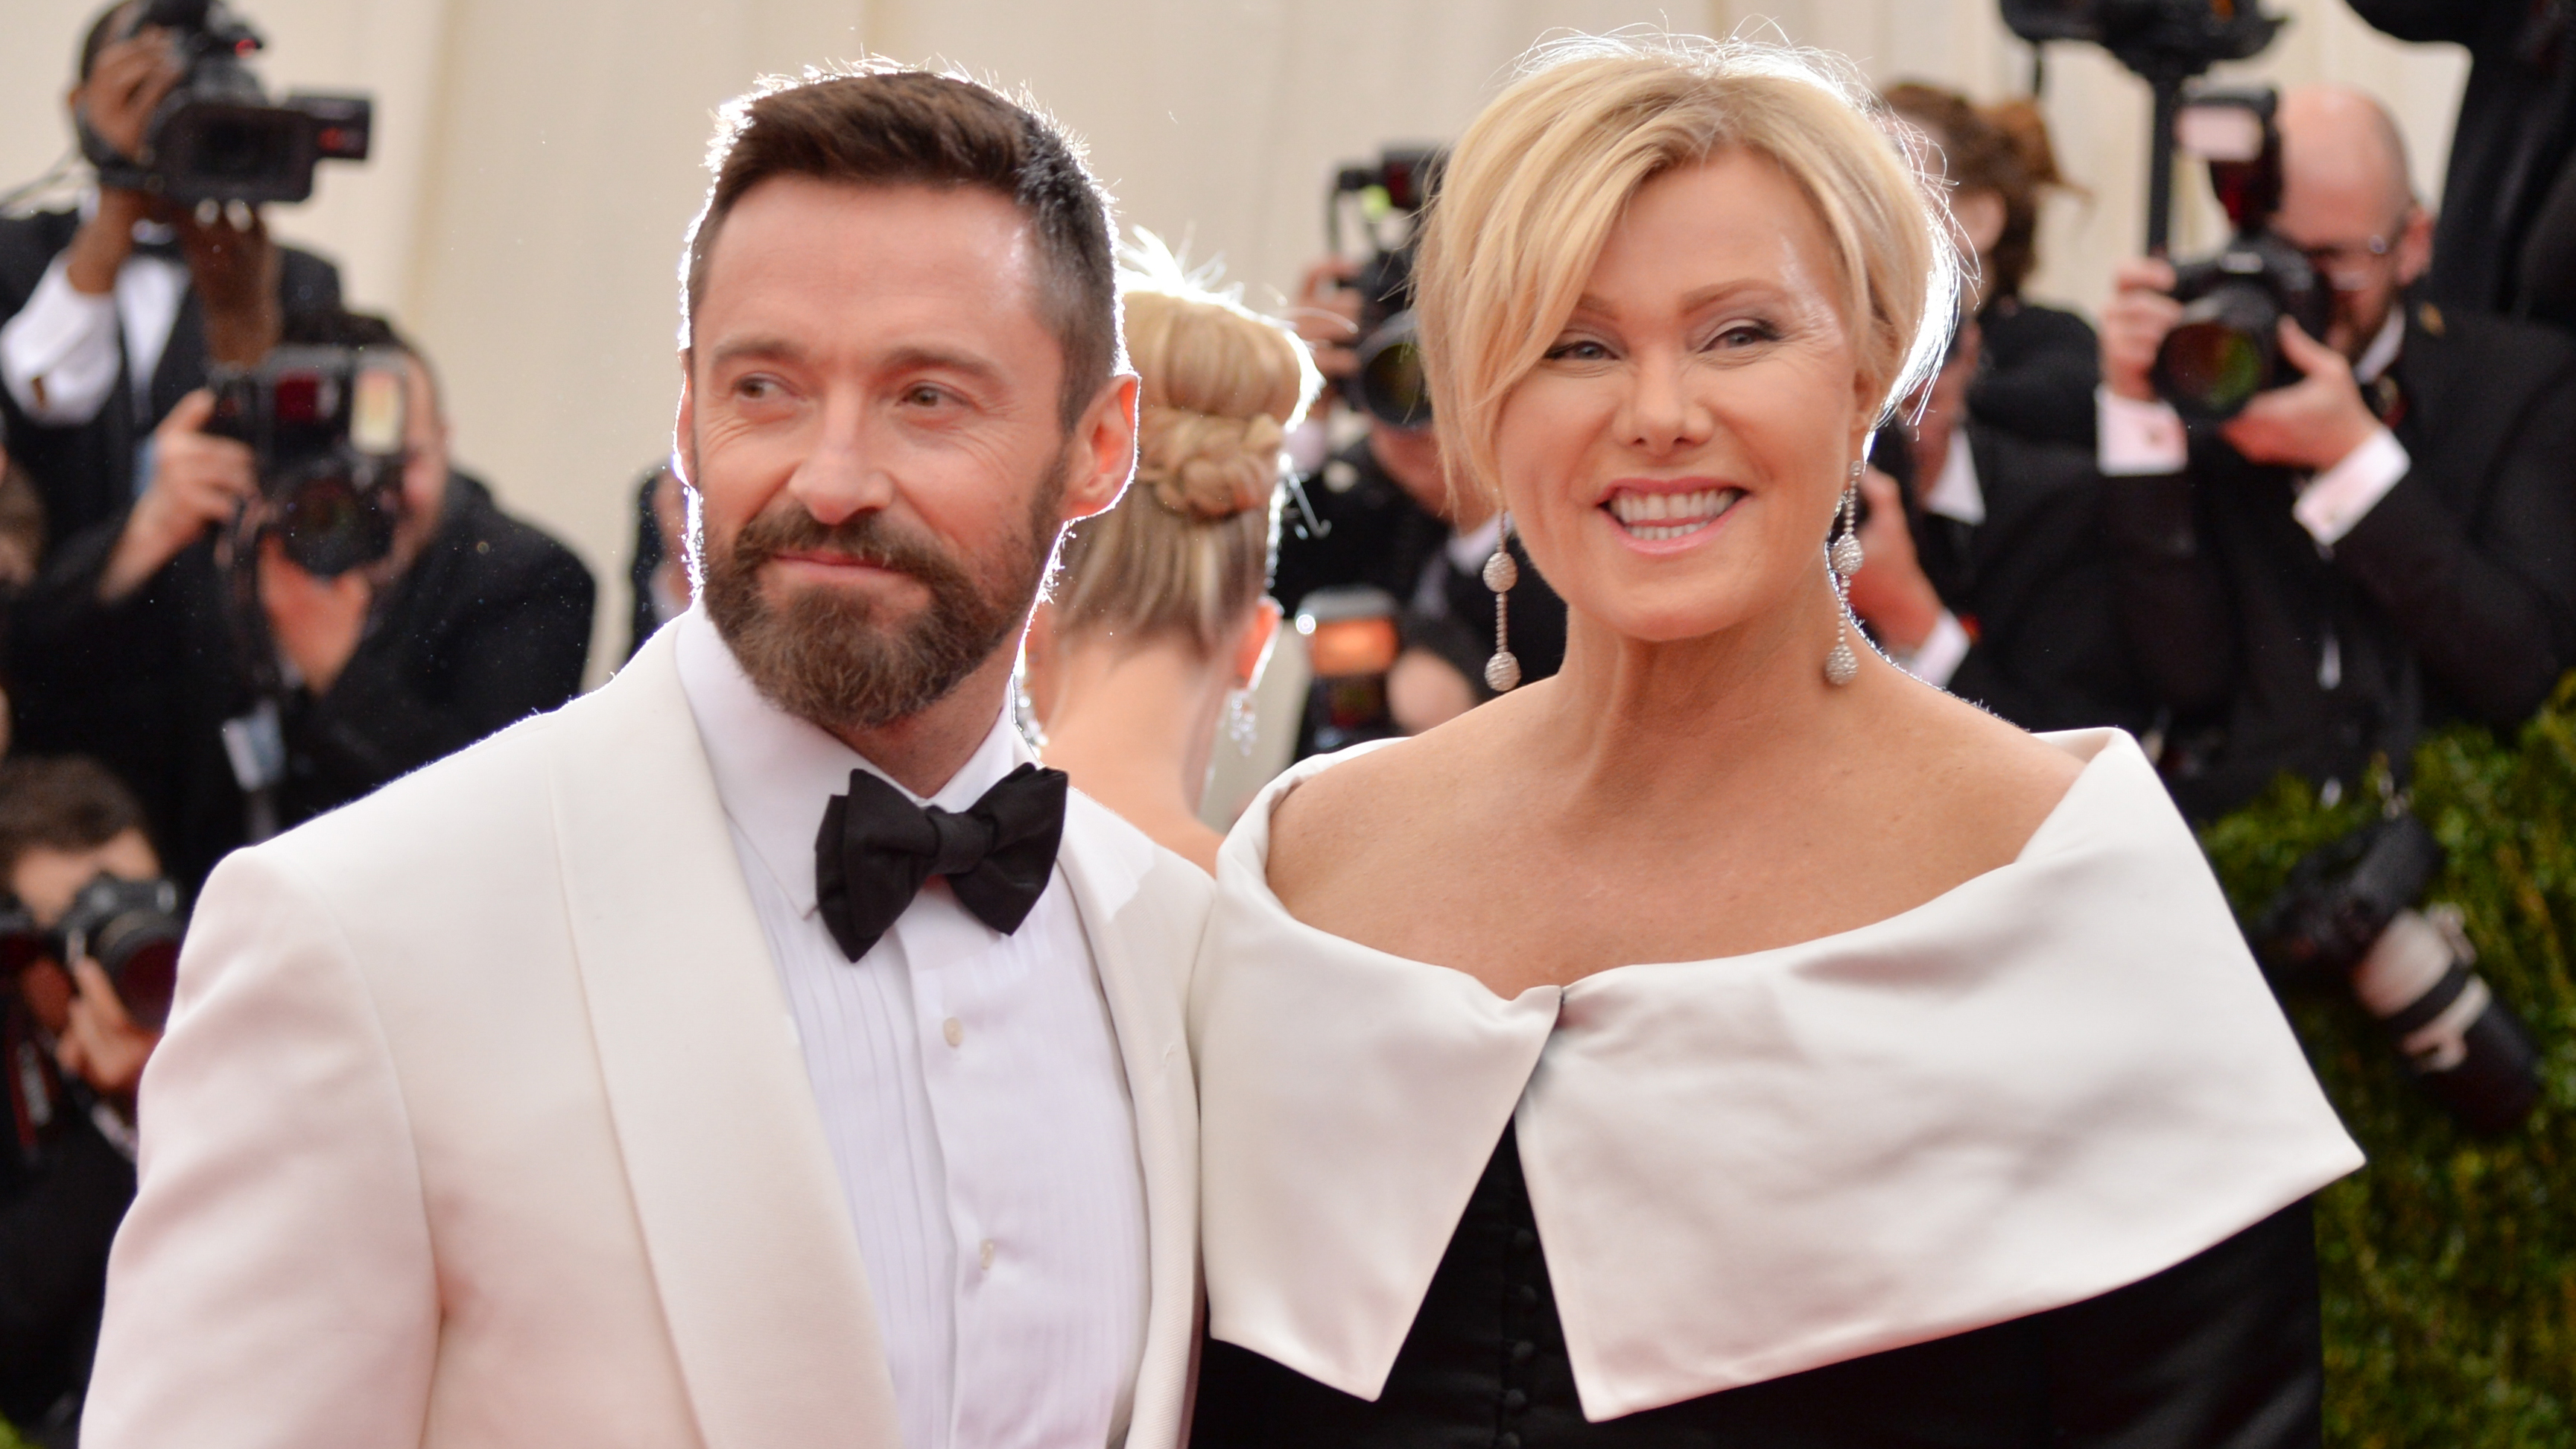 Hugh Jackman celebrates 25th wedding anniversary with Deborra-Lee Furness